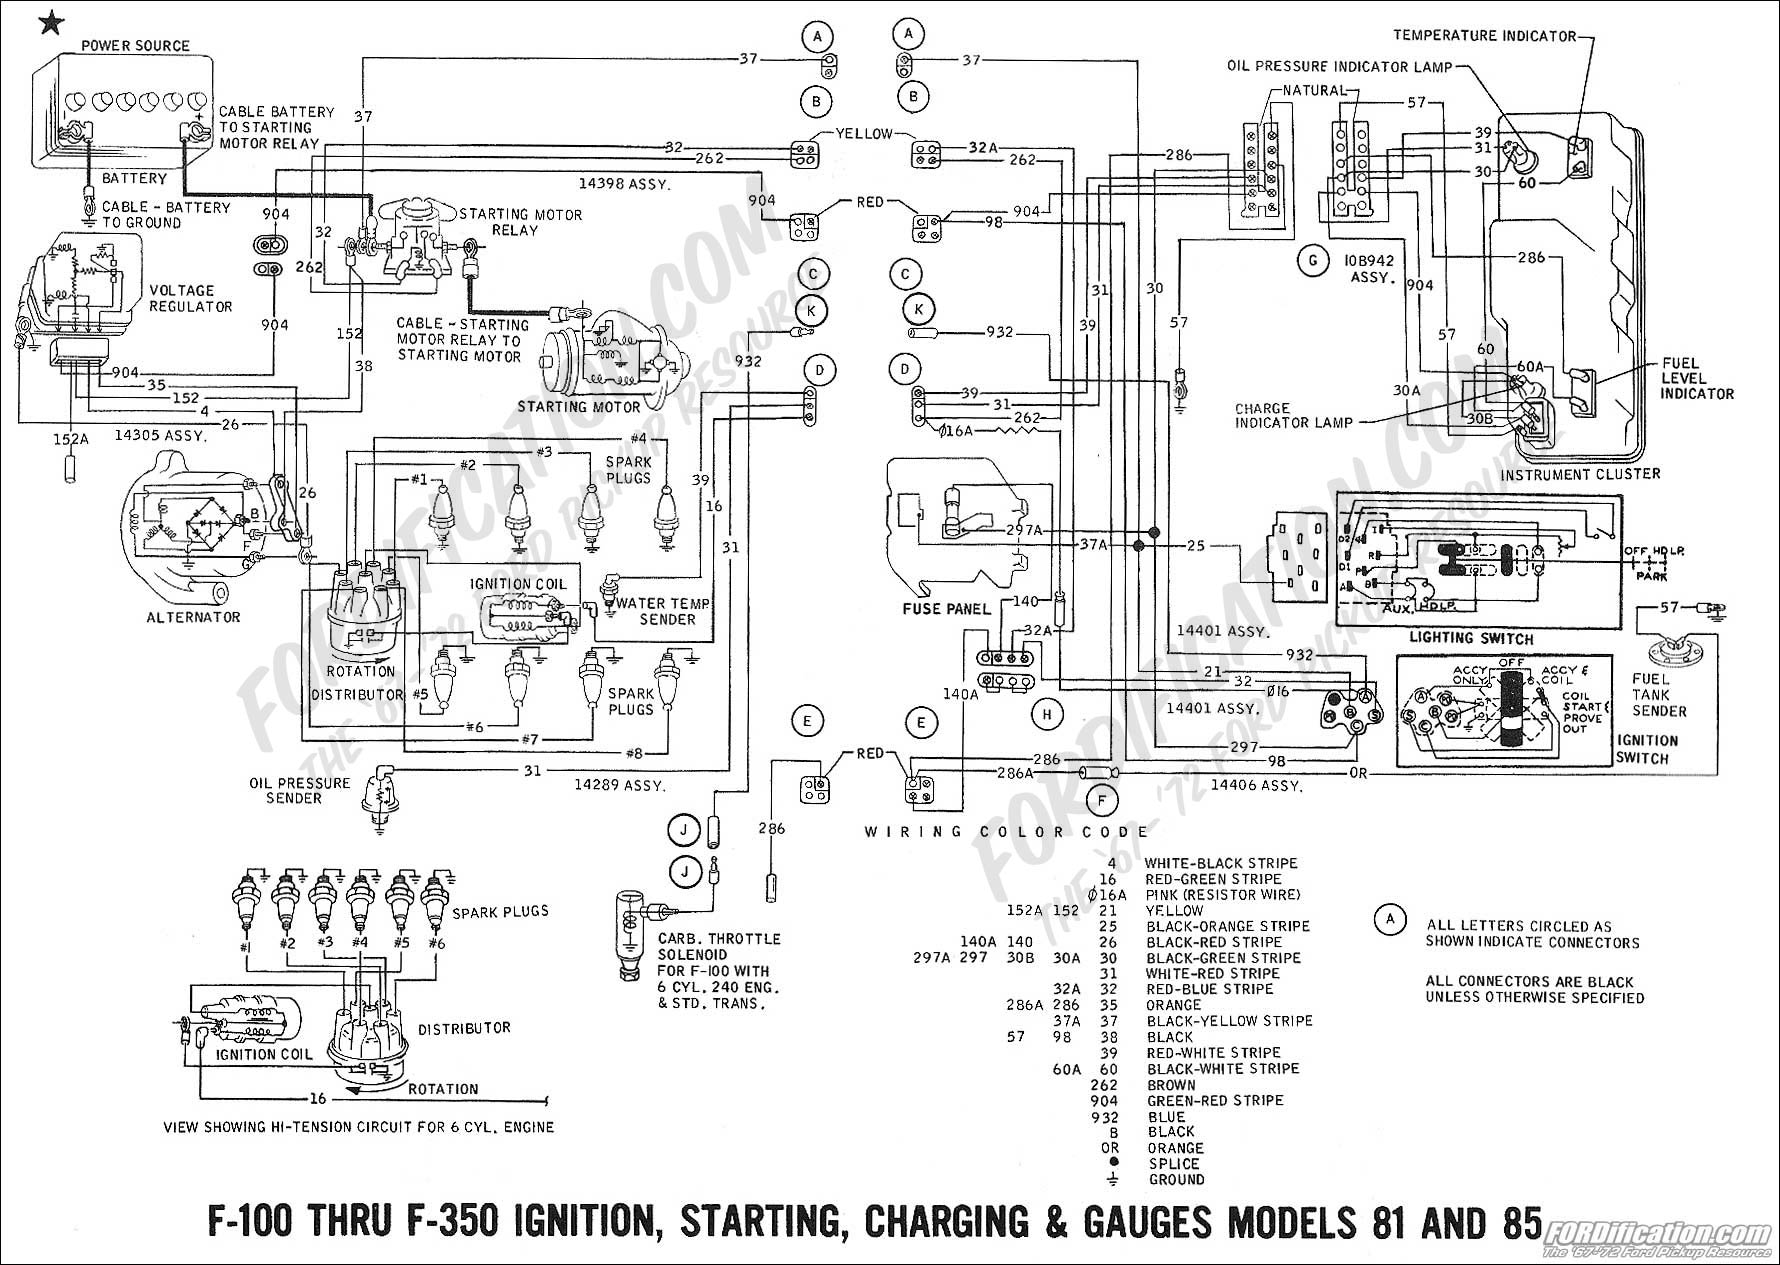 2000 Ford F 250 Fuse Box Diagram Trusted Wiring 2004 Durango Block 1968 Diy Enthusiasts Diagrams U2022 For F250 Super Duty